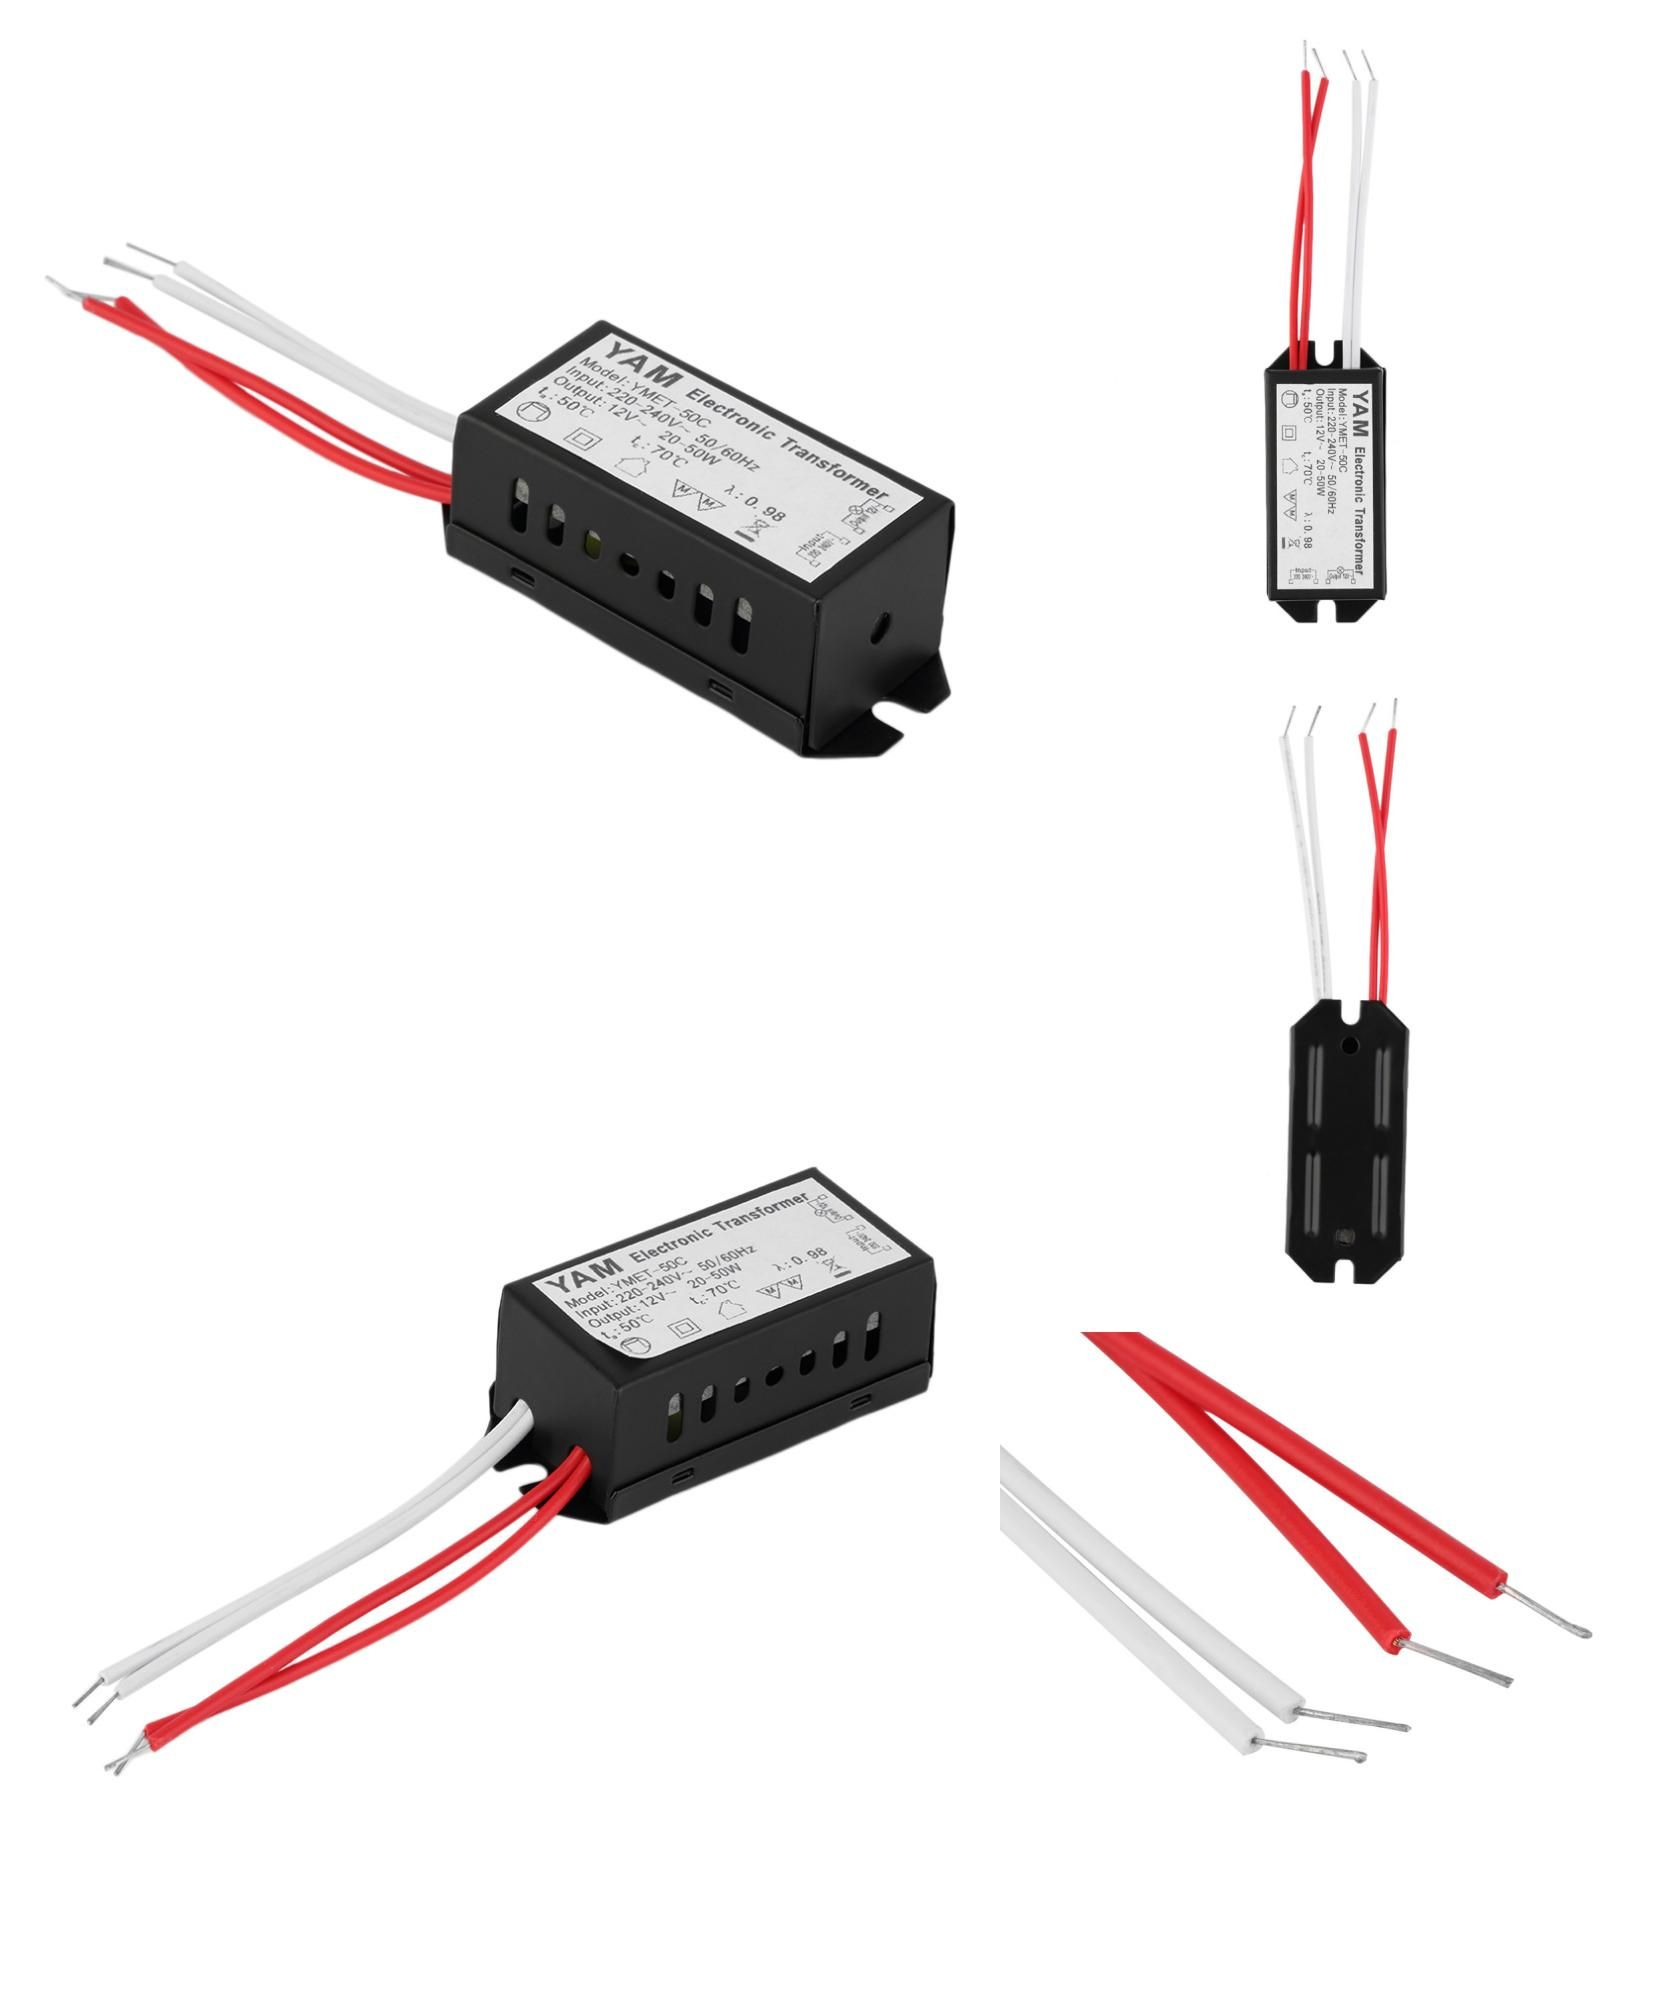 Visit To Buy 1pc Ac 220v To 12v Short Circuit Protection Halogen Lamp Electronic Transformer Power Supply Led Driver Adv Halogen Lamp Led Drivers Led Lights